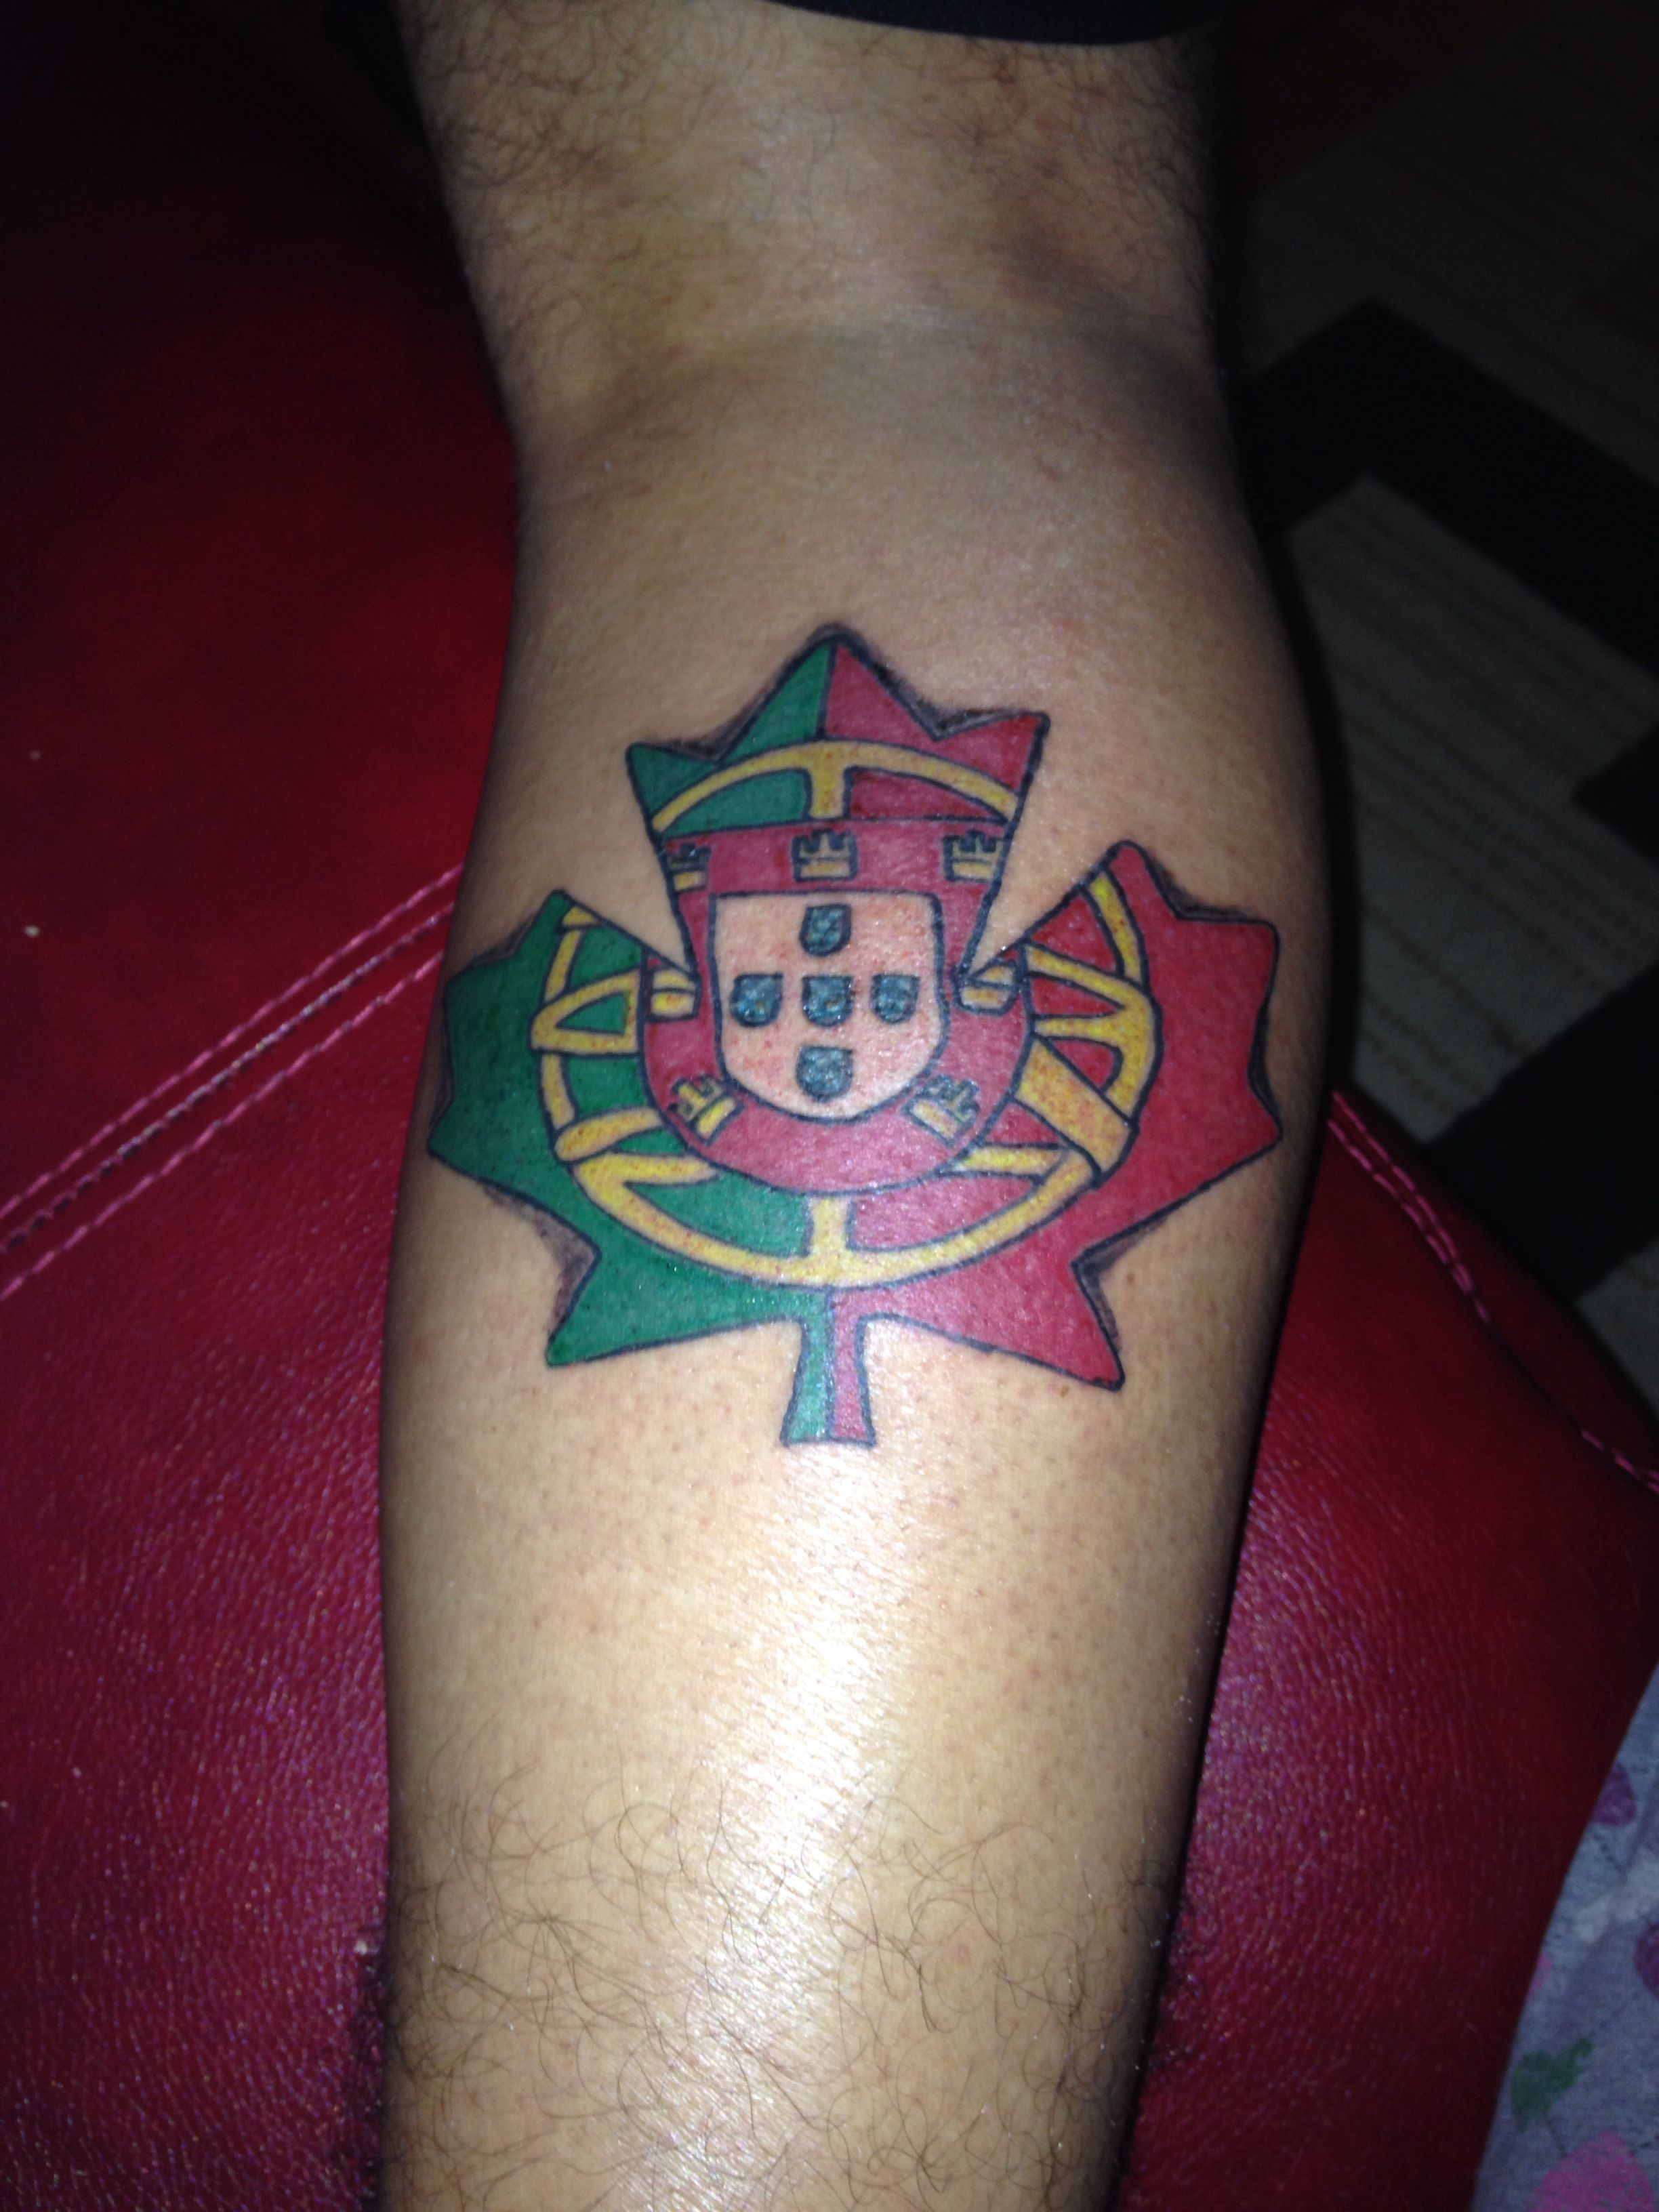 Portugese Canadian Tattoo I Love This Tattoos Ideas And Designs